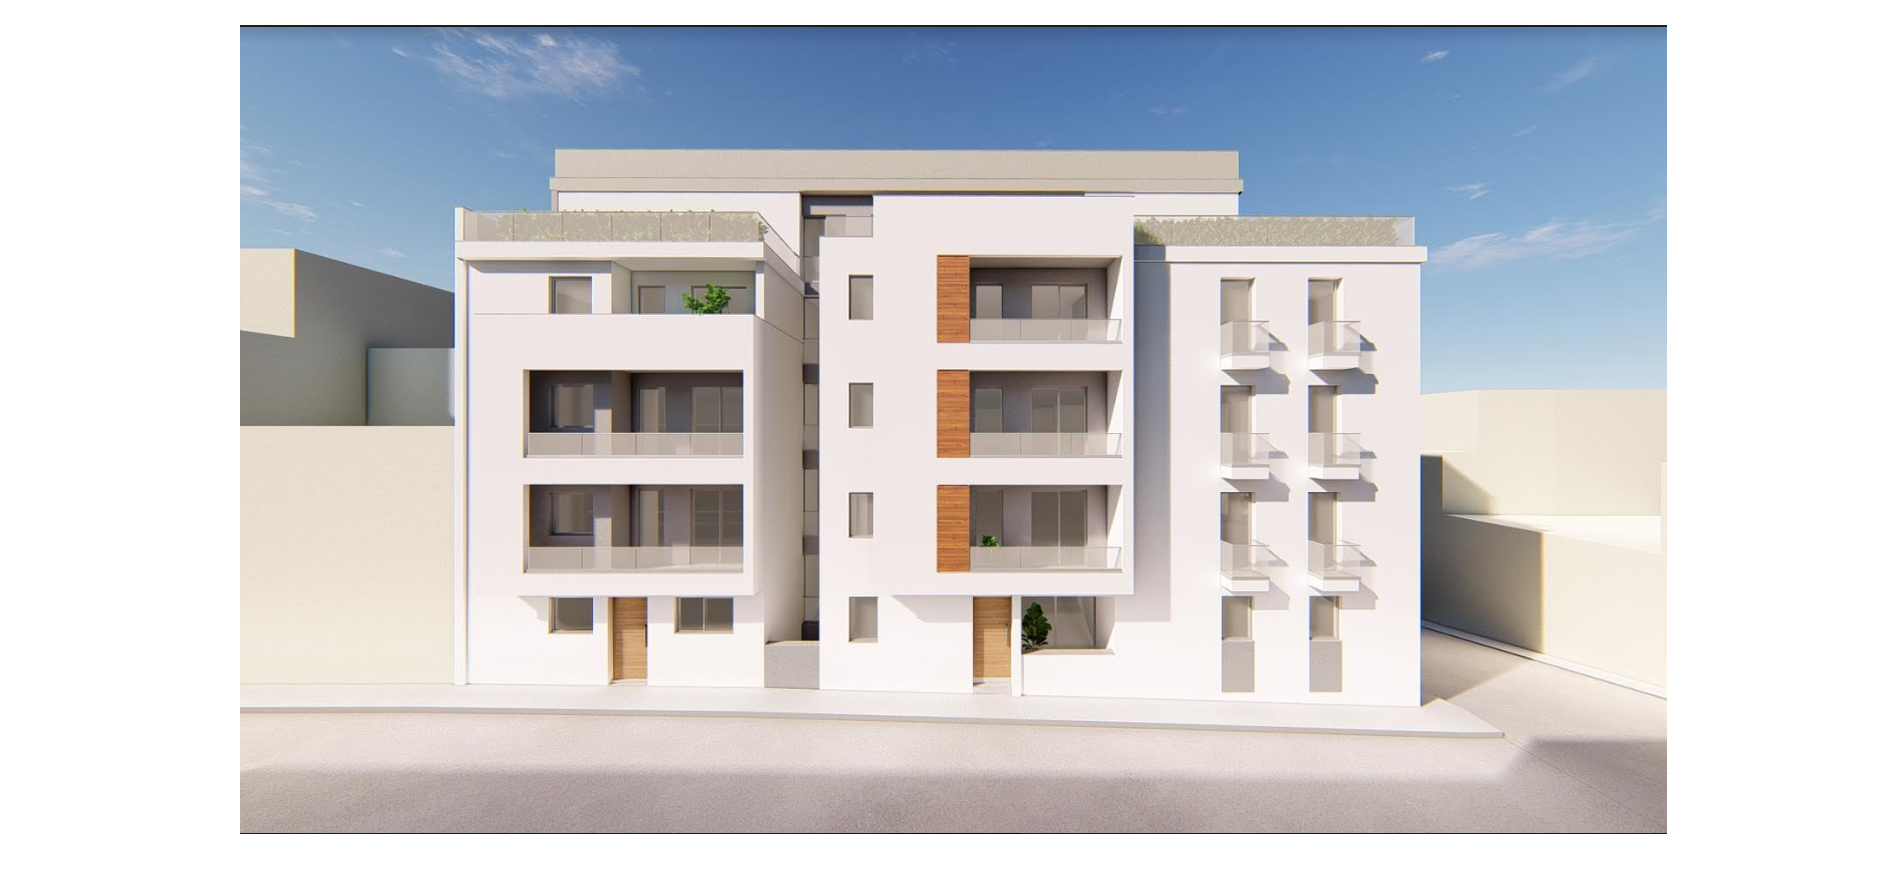 Houses for sale in Malta: New block